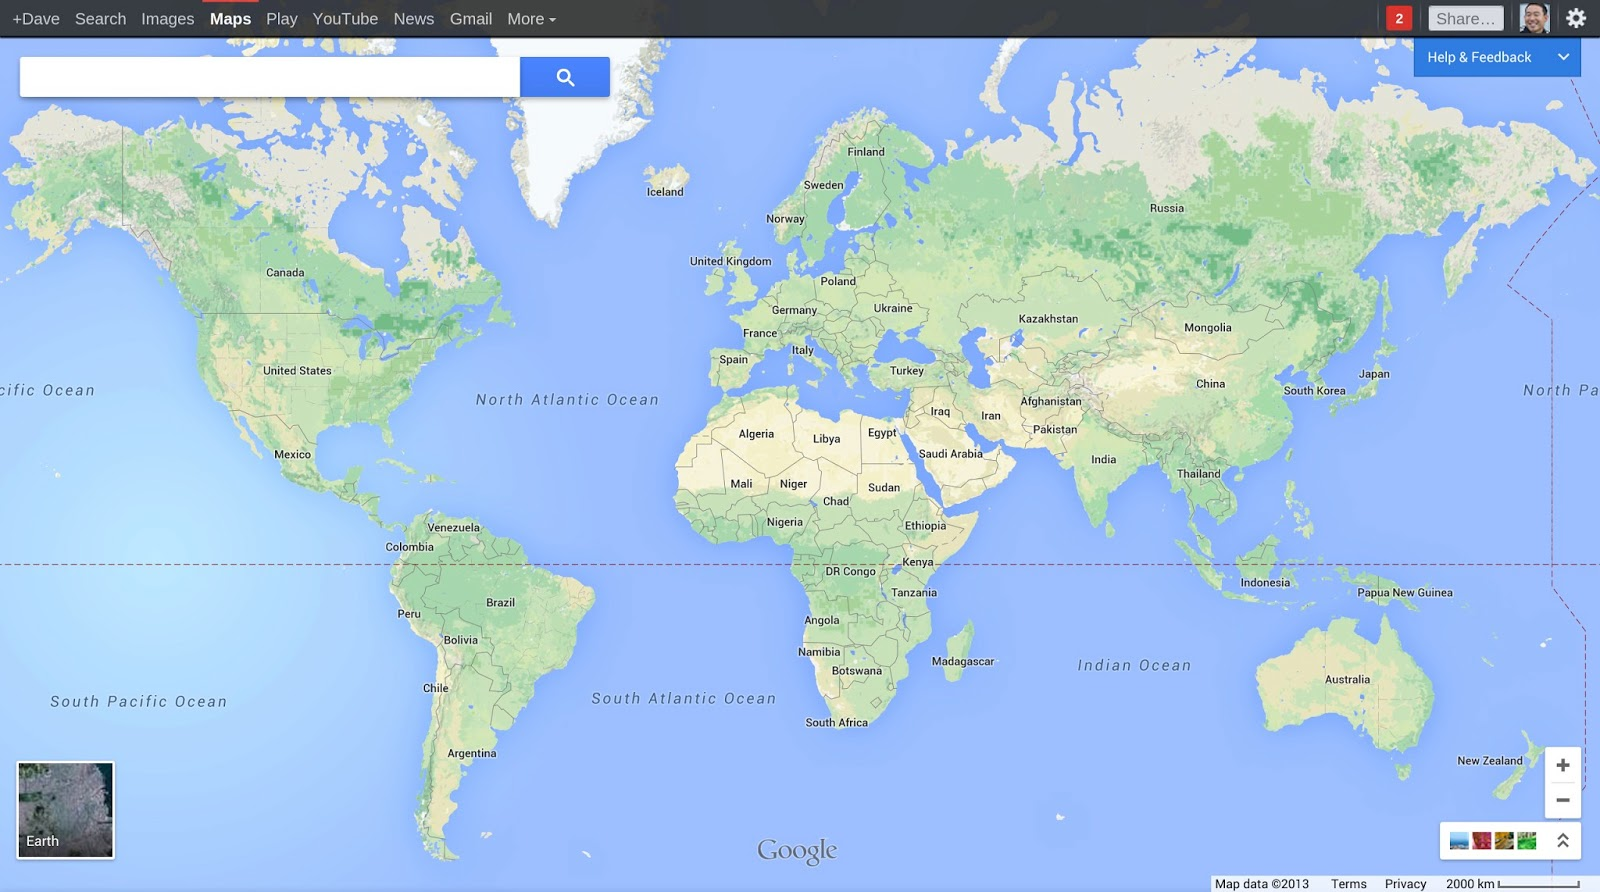 The new Google Maps uses vector-based maps that download and display more quickly.